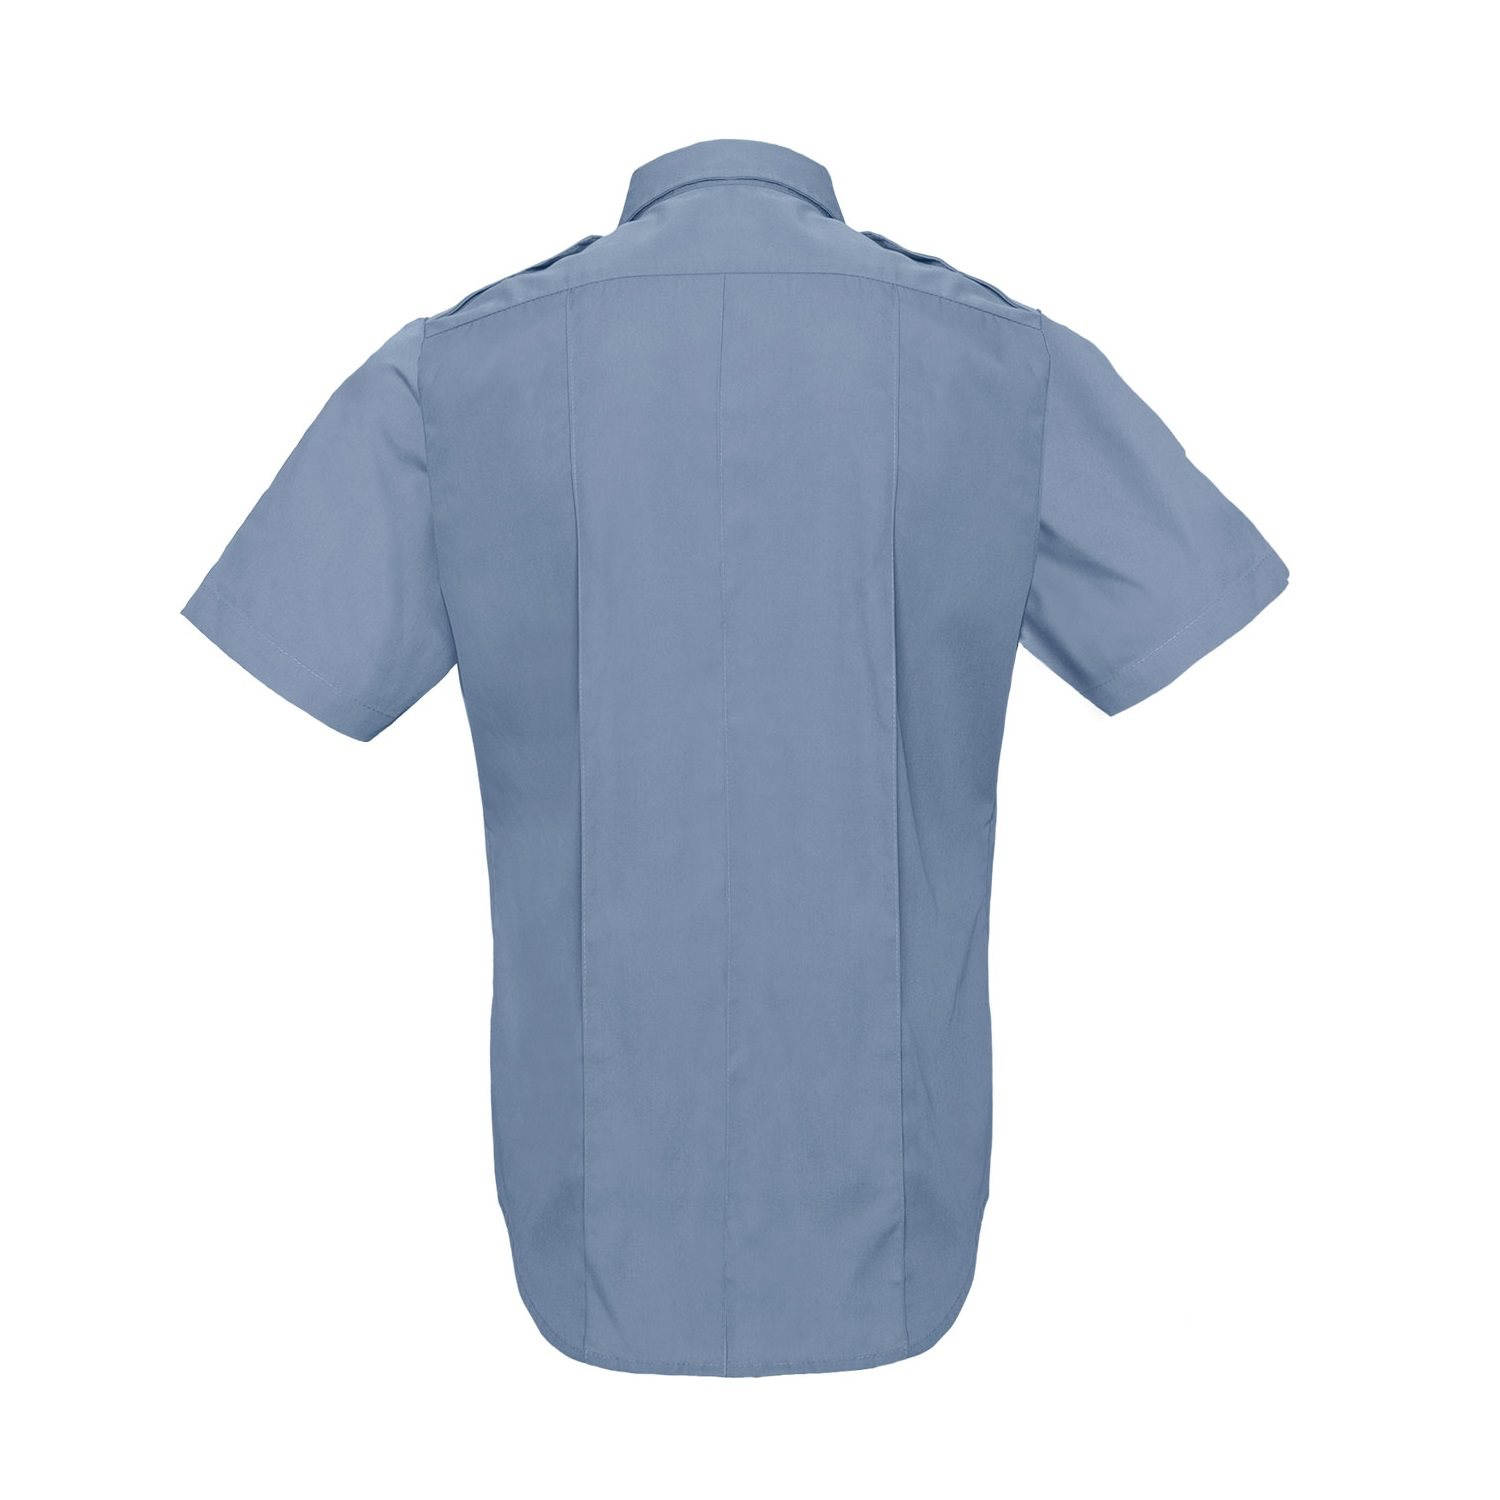 POLICE AND SECURITY shirt short sleeve light blue ROTHCO 30025 L-11